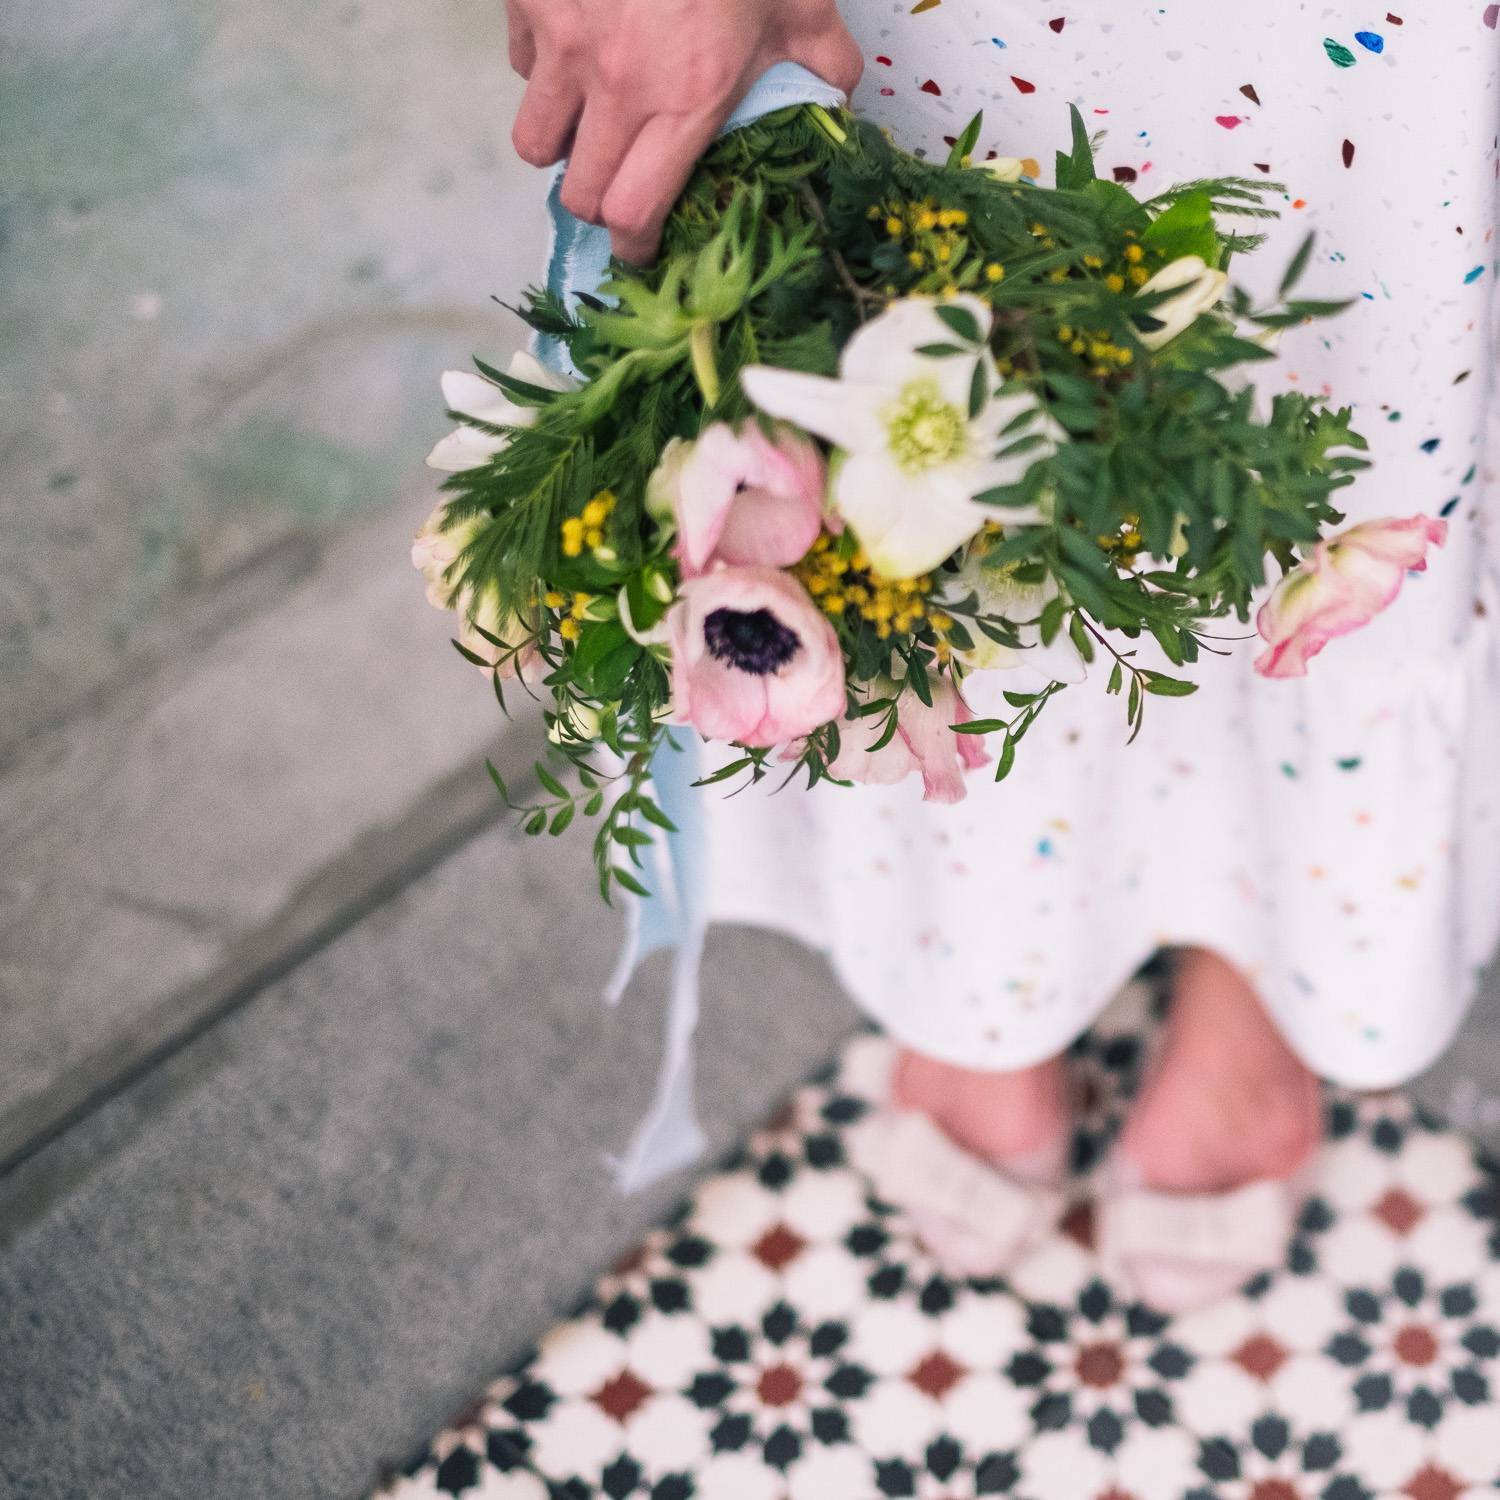 Engagement bouquet and polka dot dress in Singapore prewedding shoot